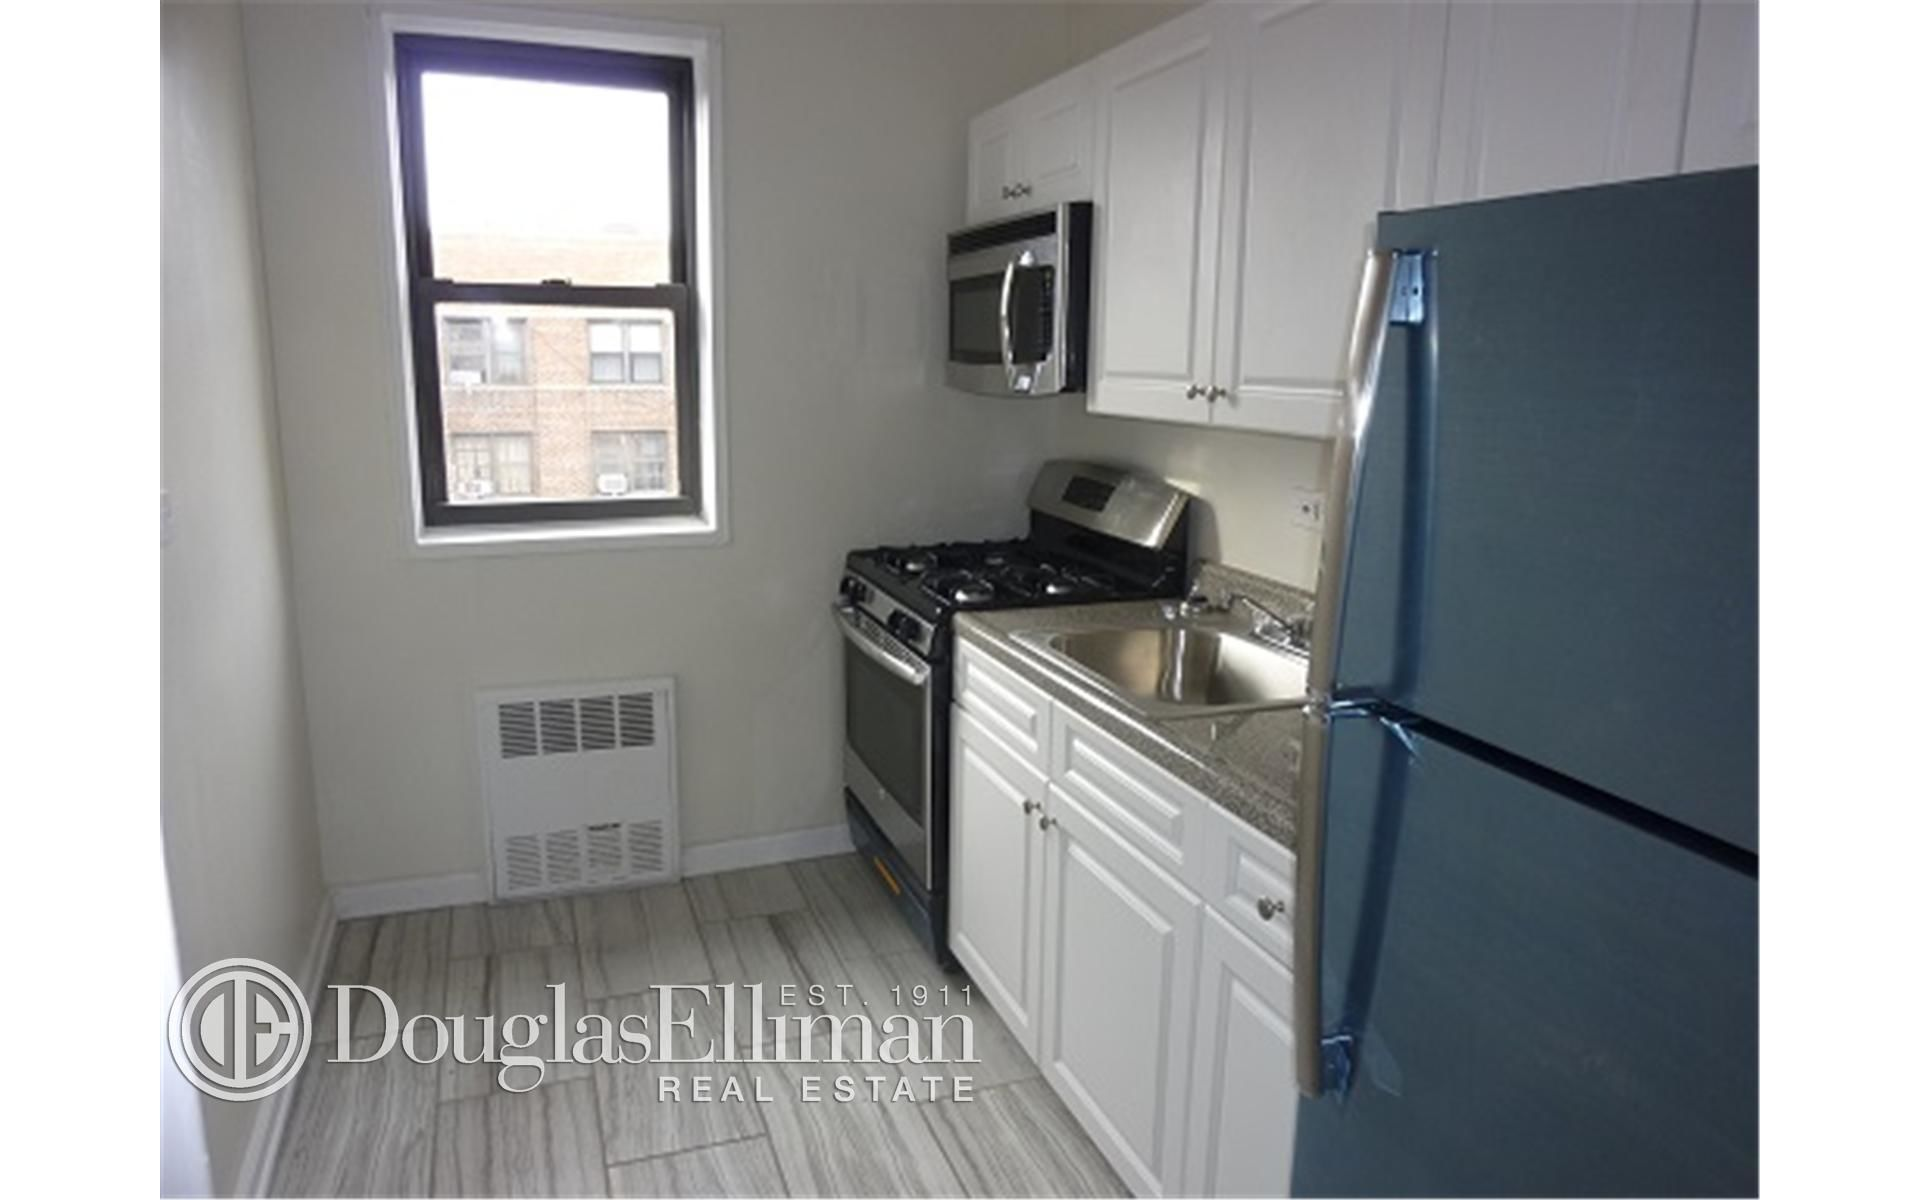 285 E 35th St, APT 7F Photo 0 - ELLIMAN-2322830